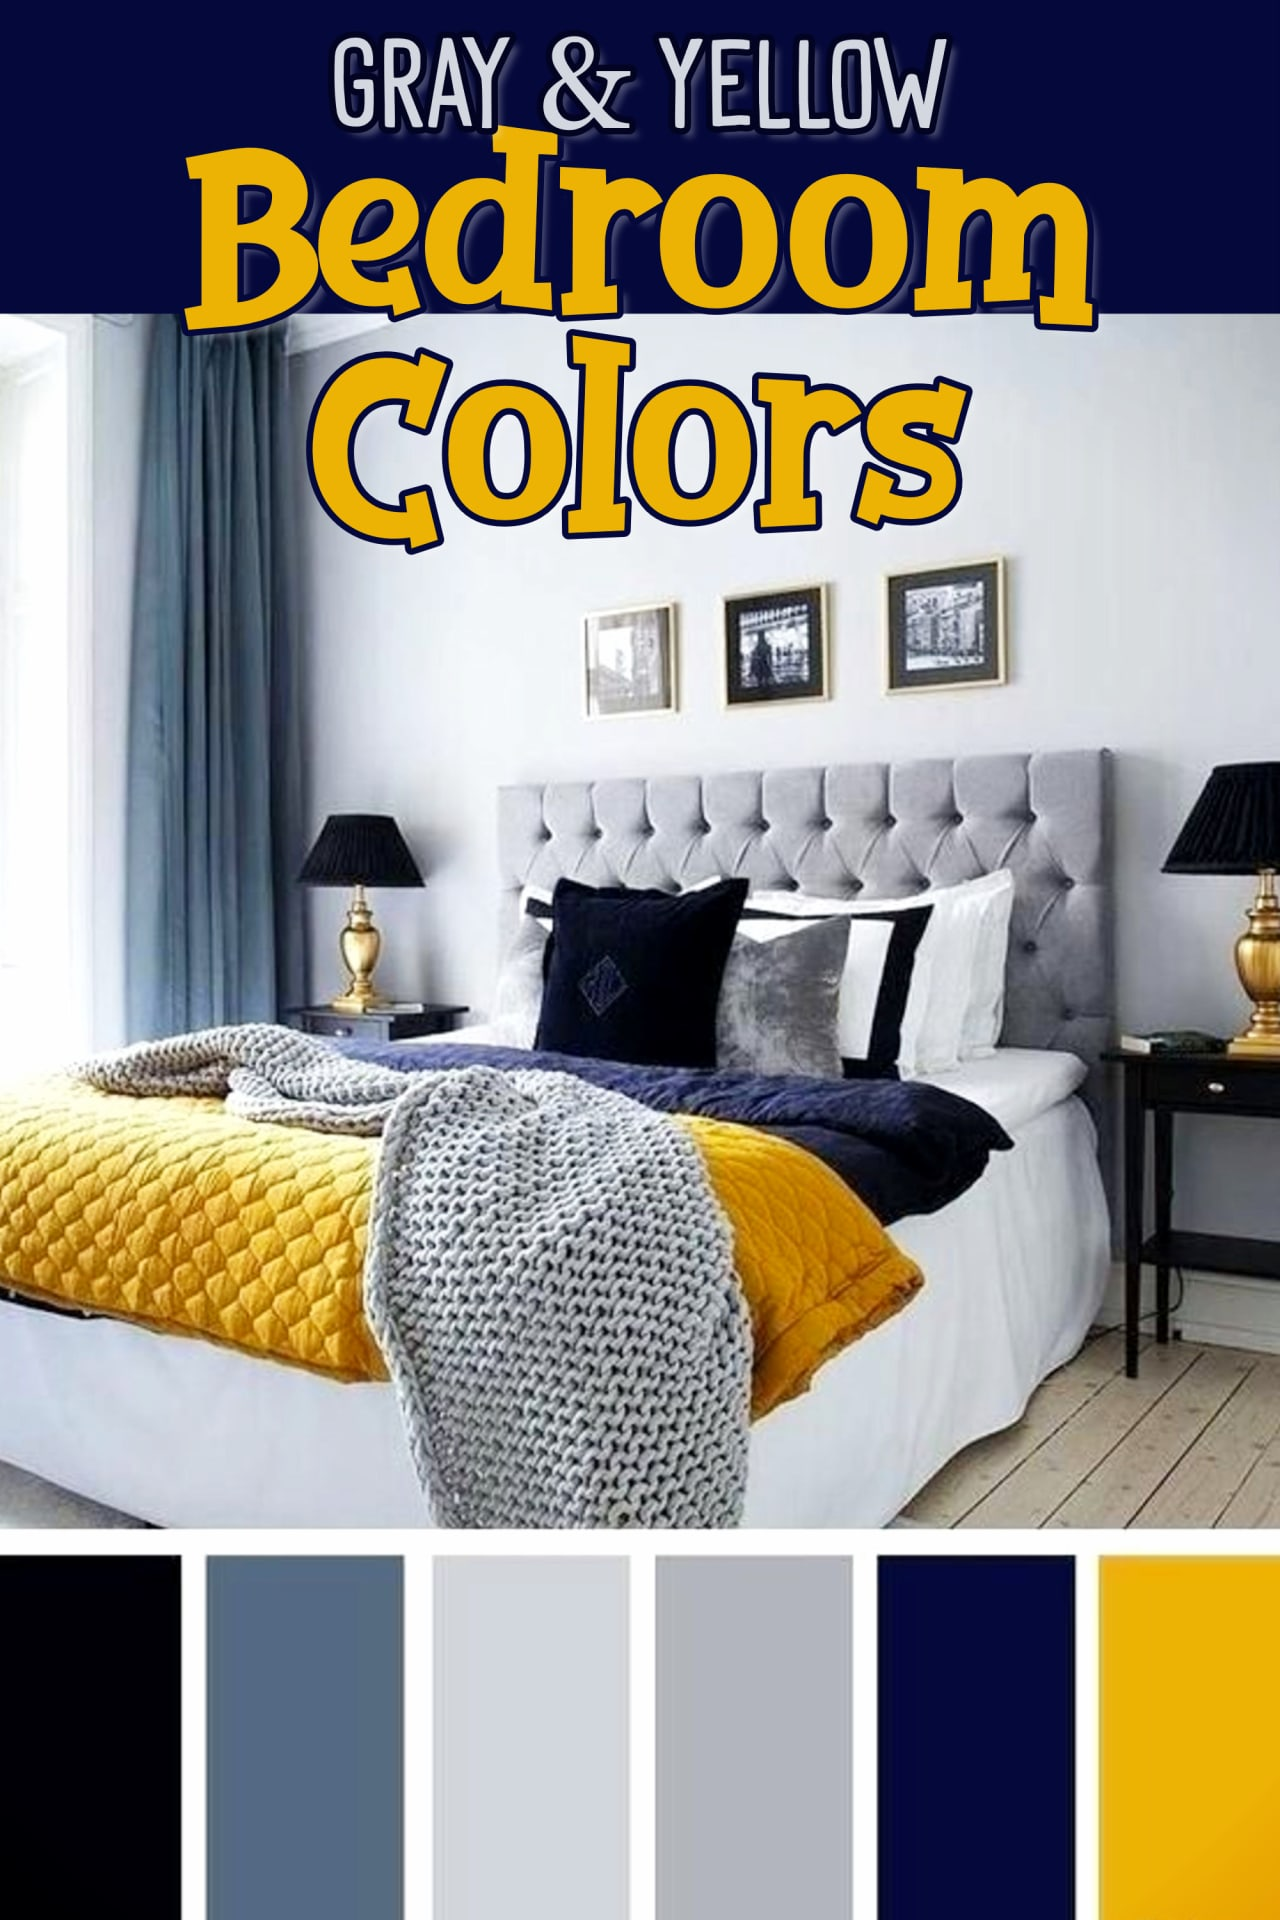 Bedroom accent colors for a gray and yellow bedroom - gray, yellow, blue and navy blue bedroom decorating ideas- beautiful master suite bedroom colors, dorm room colors or a teen bedroom color scheme.  Really brightens up a small apartment bedroom too!